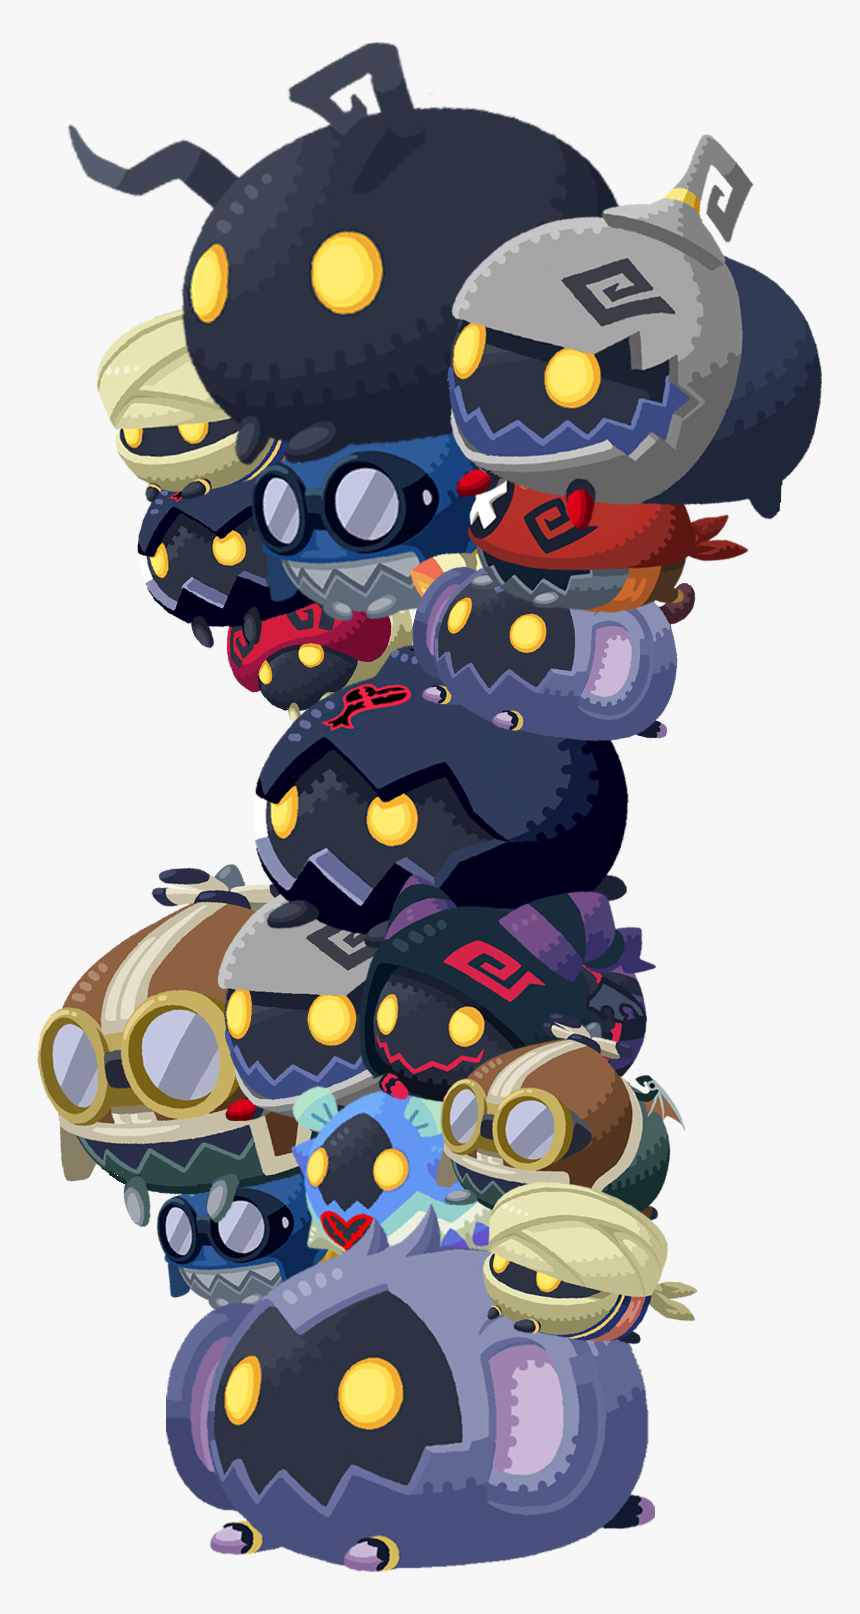 Heartless Tsum Khux - Heartless Kingdom Hearts Union X, HD Png Download, Free Download